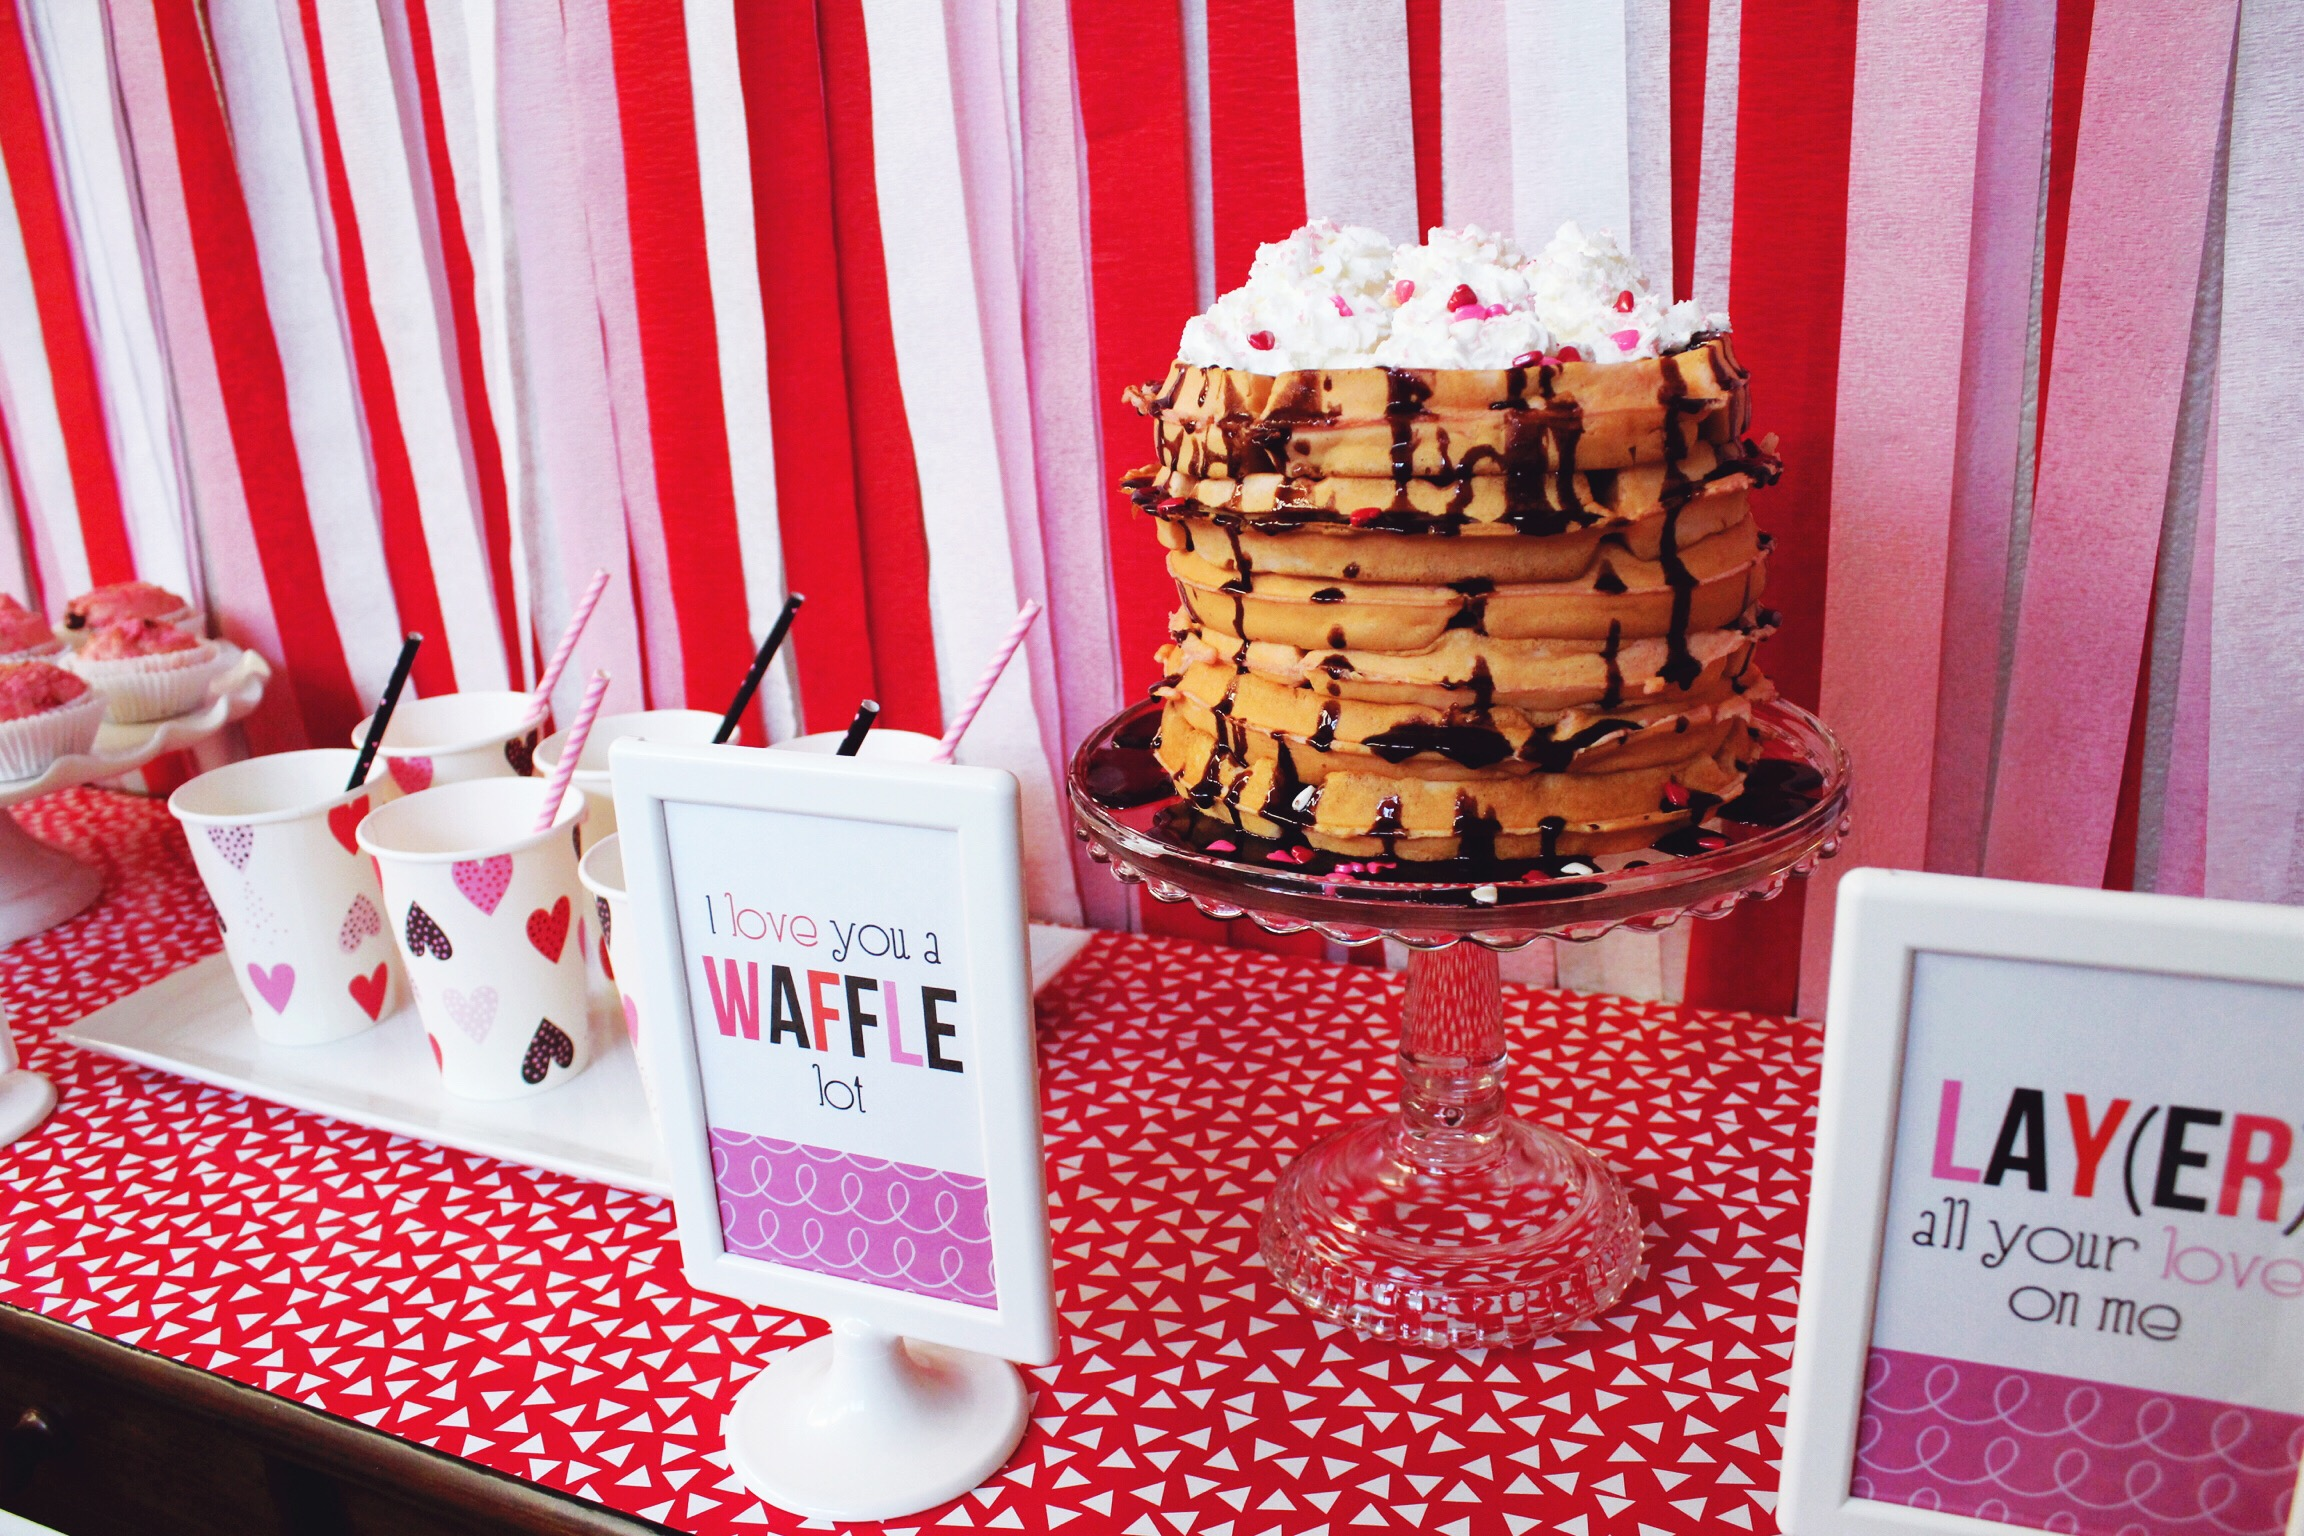 Deisgn Organize Party_Valentine's Day Breakfast Party Ideas Inspiration_Waffles_Milk_Hearts.JPG